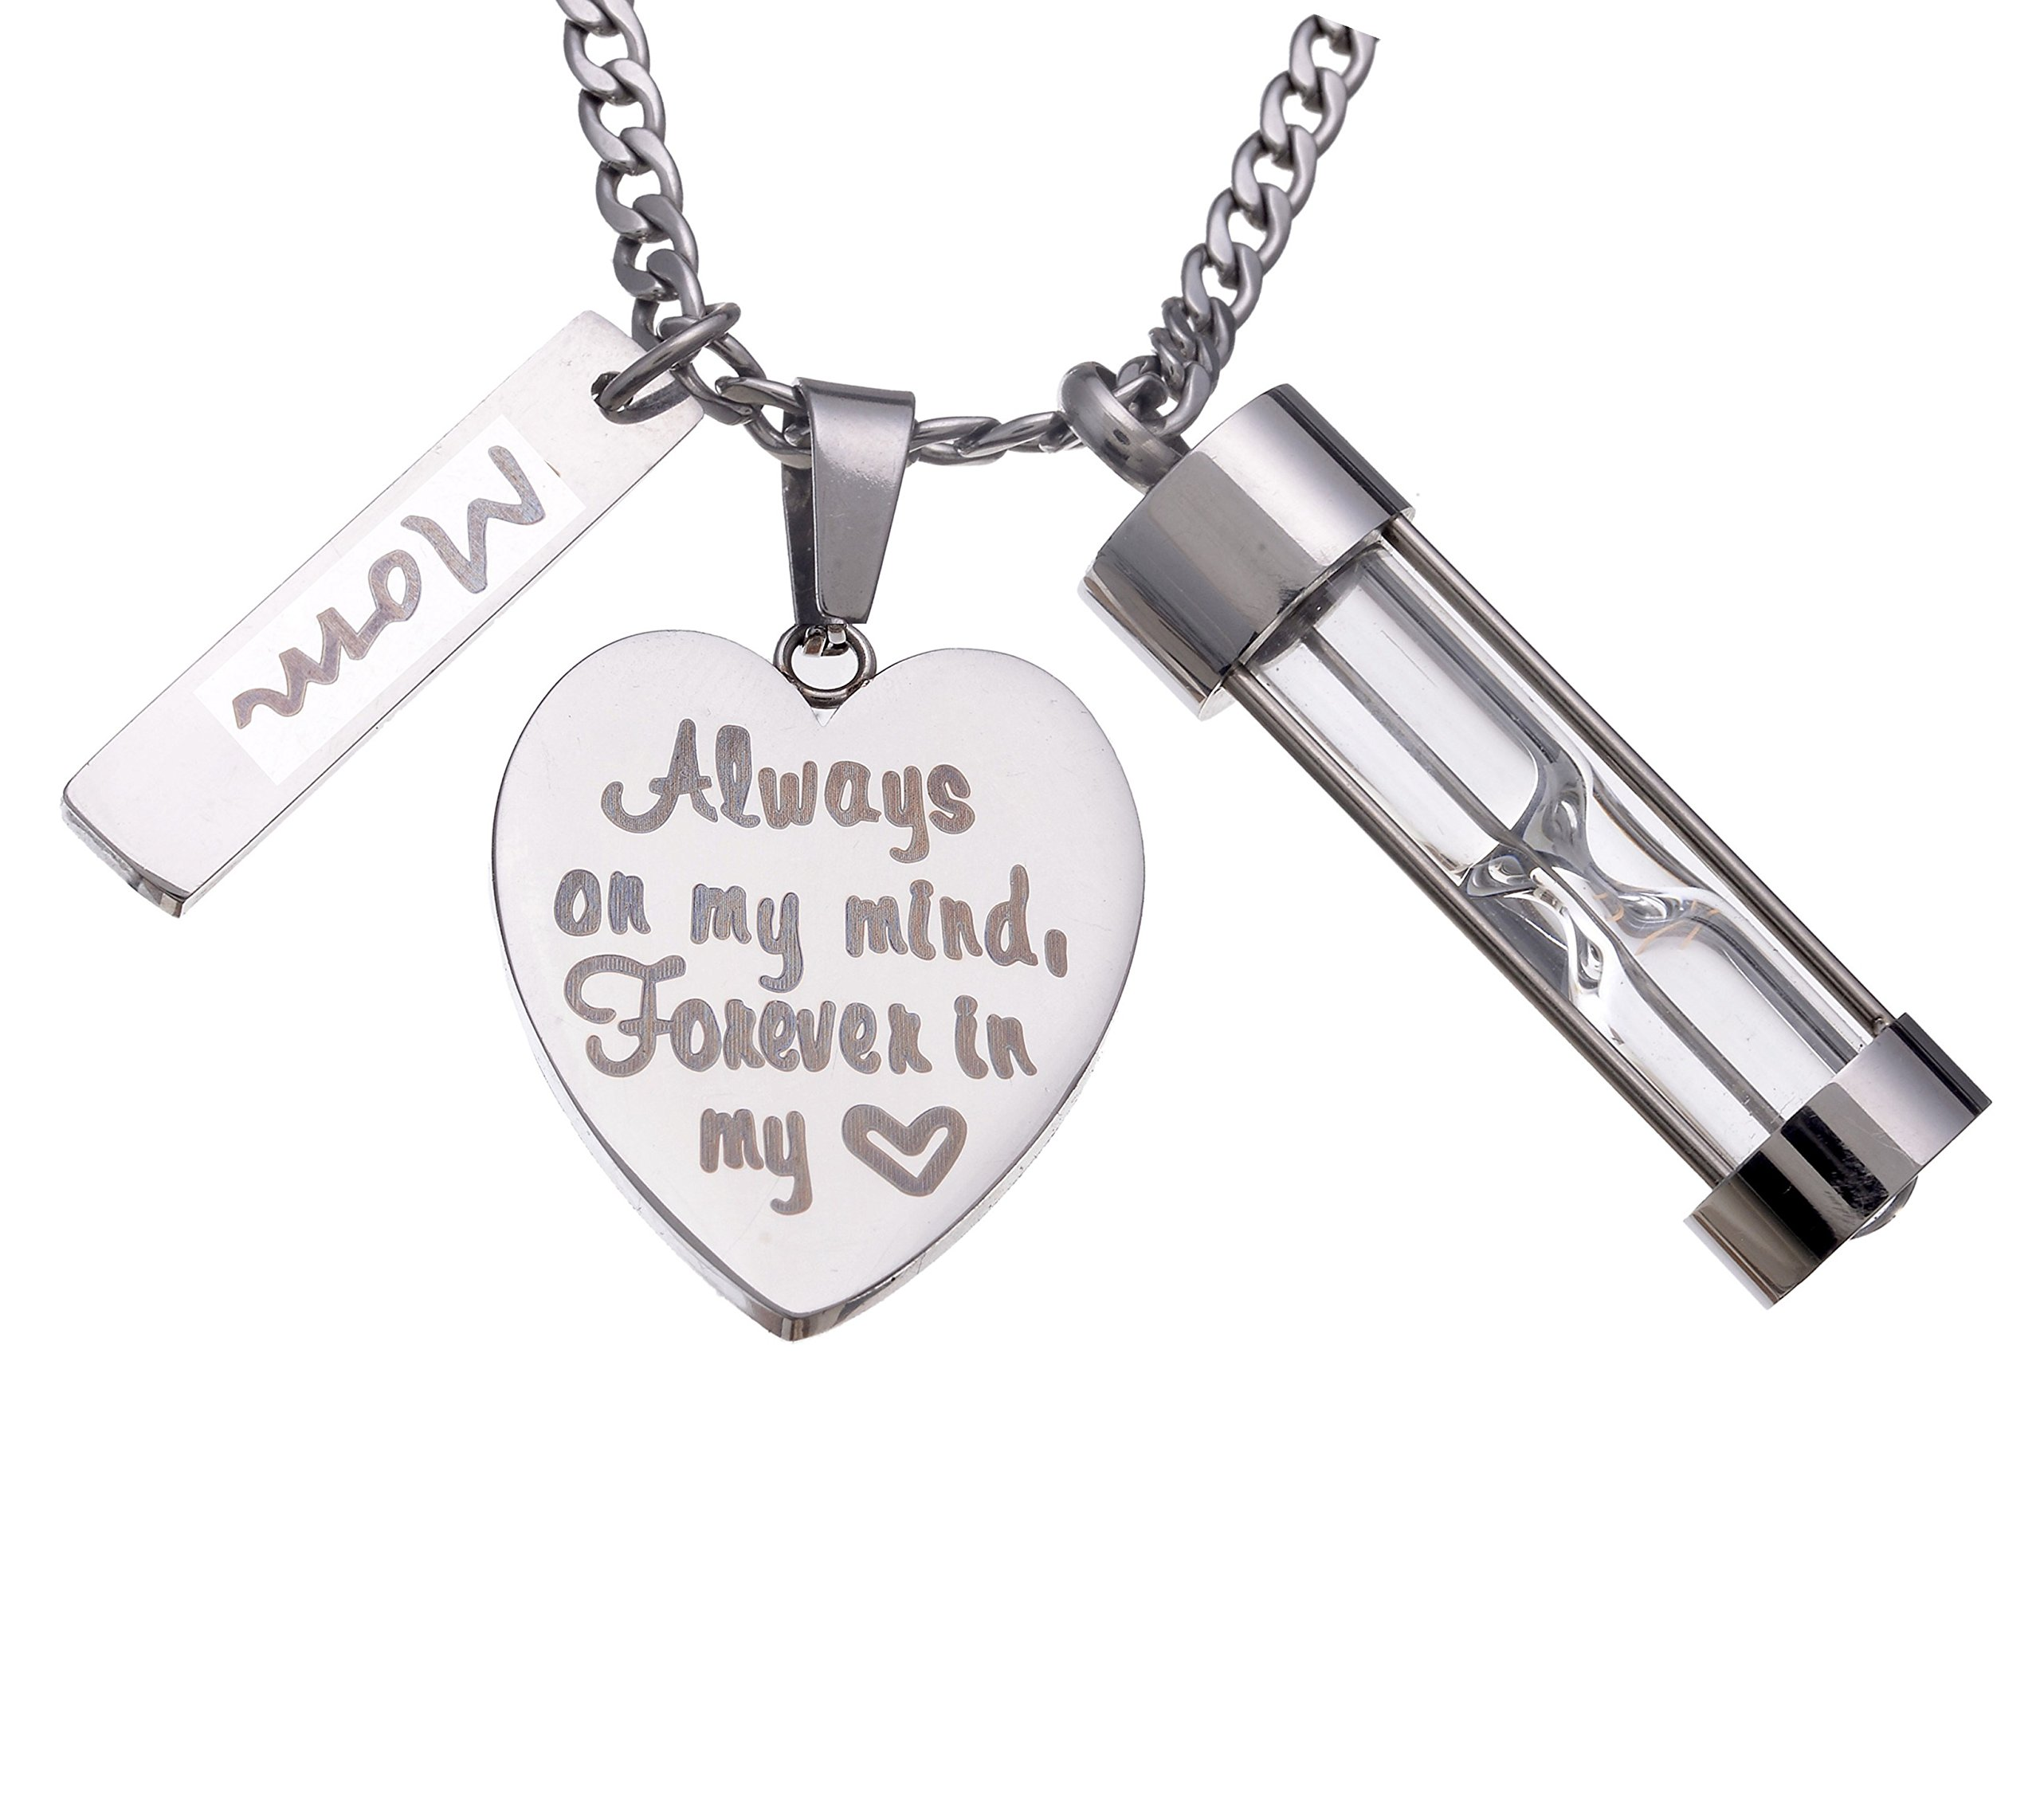 Stainless Steel Hourglass Ashes Urn Memorial for Mom Keepsake Pendant Necklace,Always on my Mind Forever in my Heart